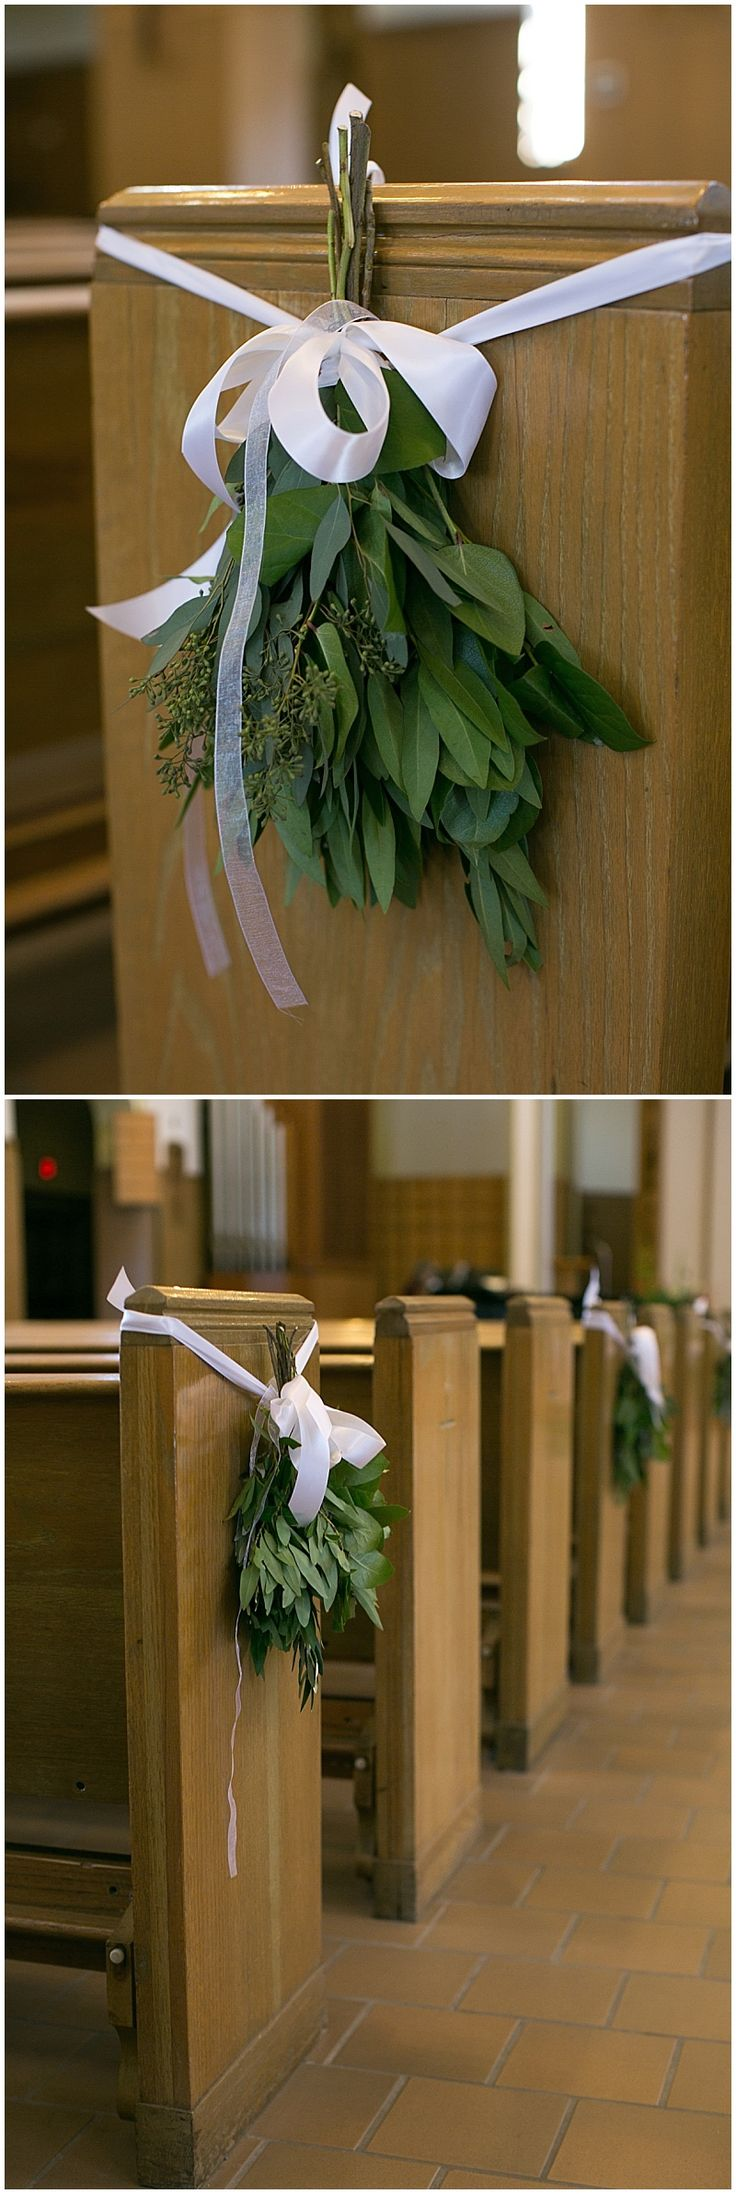 Church wedding aisle decor designed by Minneapolis wedding florist Artemisia Studios. Photos by Erin Johnson Photography (http://erinjohnsonphoto.com/) #wedding #churchwedding #weddingdecor #aisledecor #indoorwedding #winterwedding #flowers #minneapolisweddingflorist #saintpaulweddingflorist #artemisiastudios